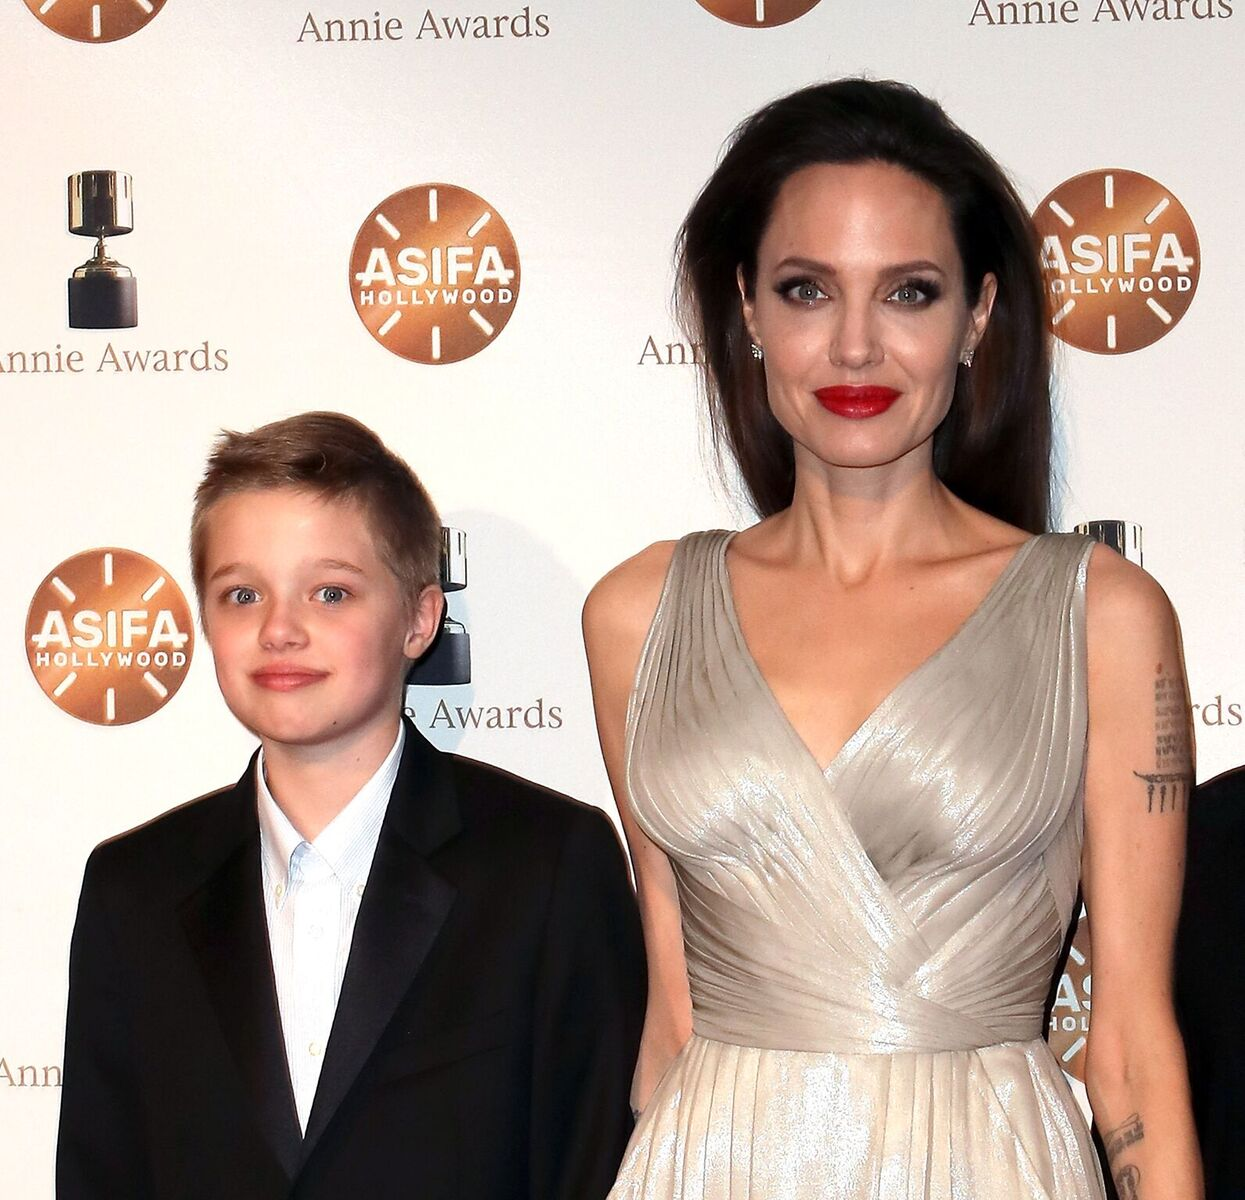 Shiloh Nouvel Jolie-Pitt and Angelina Jolie at the 45th Annual Annie Awards on February 3, 2018, in Los Angeles, California   Photo: David Livingston/Getty Images